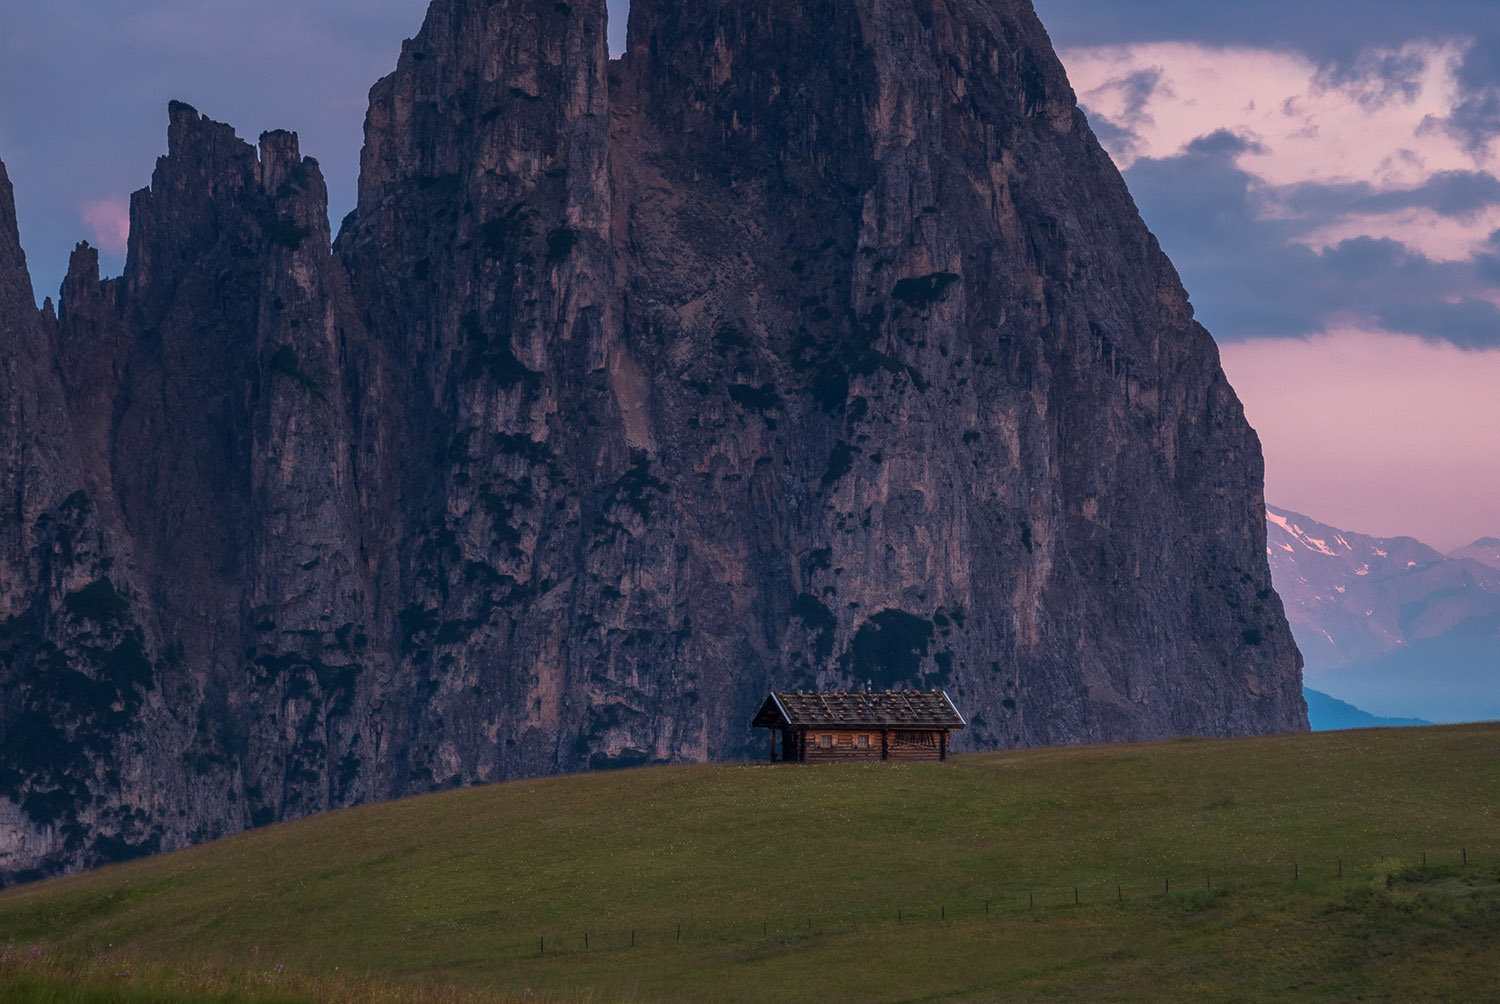 Cottages at Alpe di Siusi at sunrise in the Dolomites example image 1